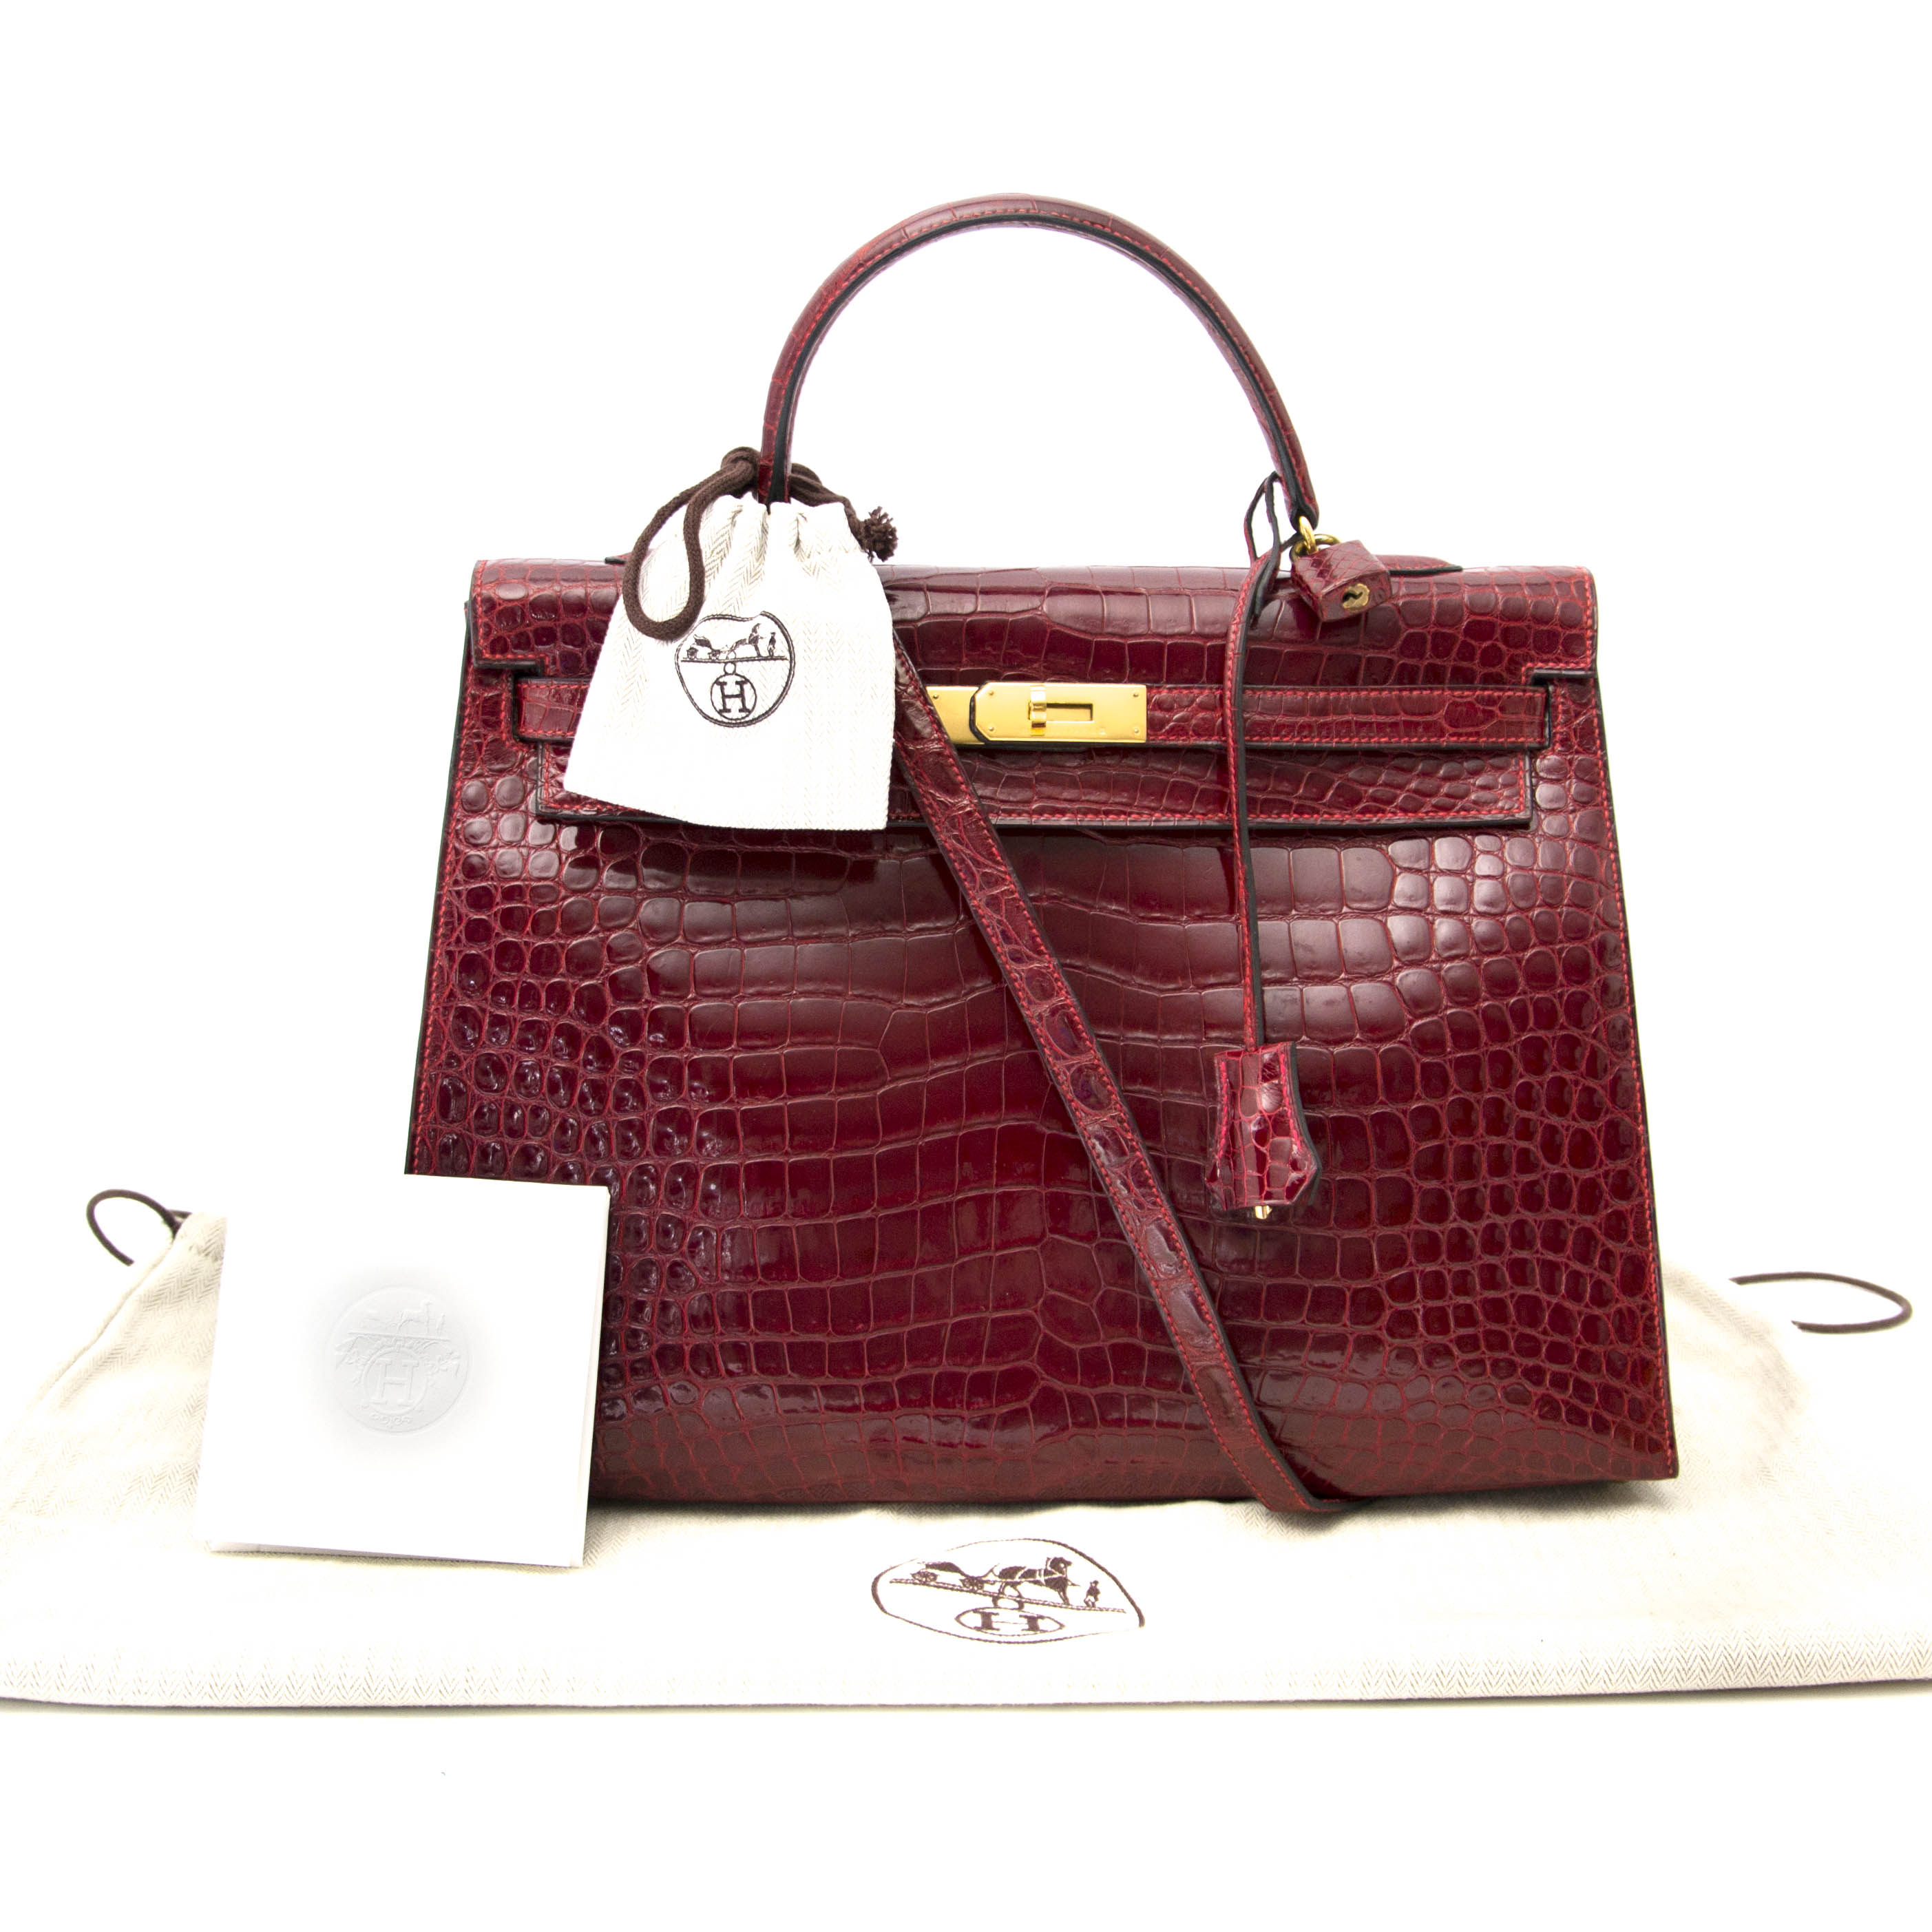 looking for a secondhand Rare Hermes Kelly 35 Rouge H Alligator GHW? online at the best price your luxury